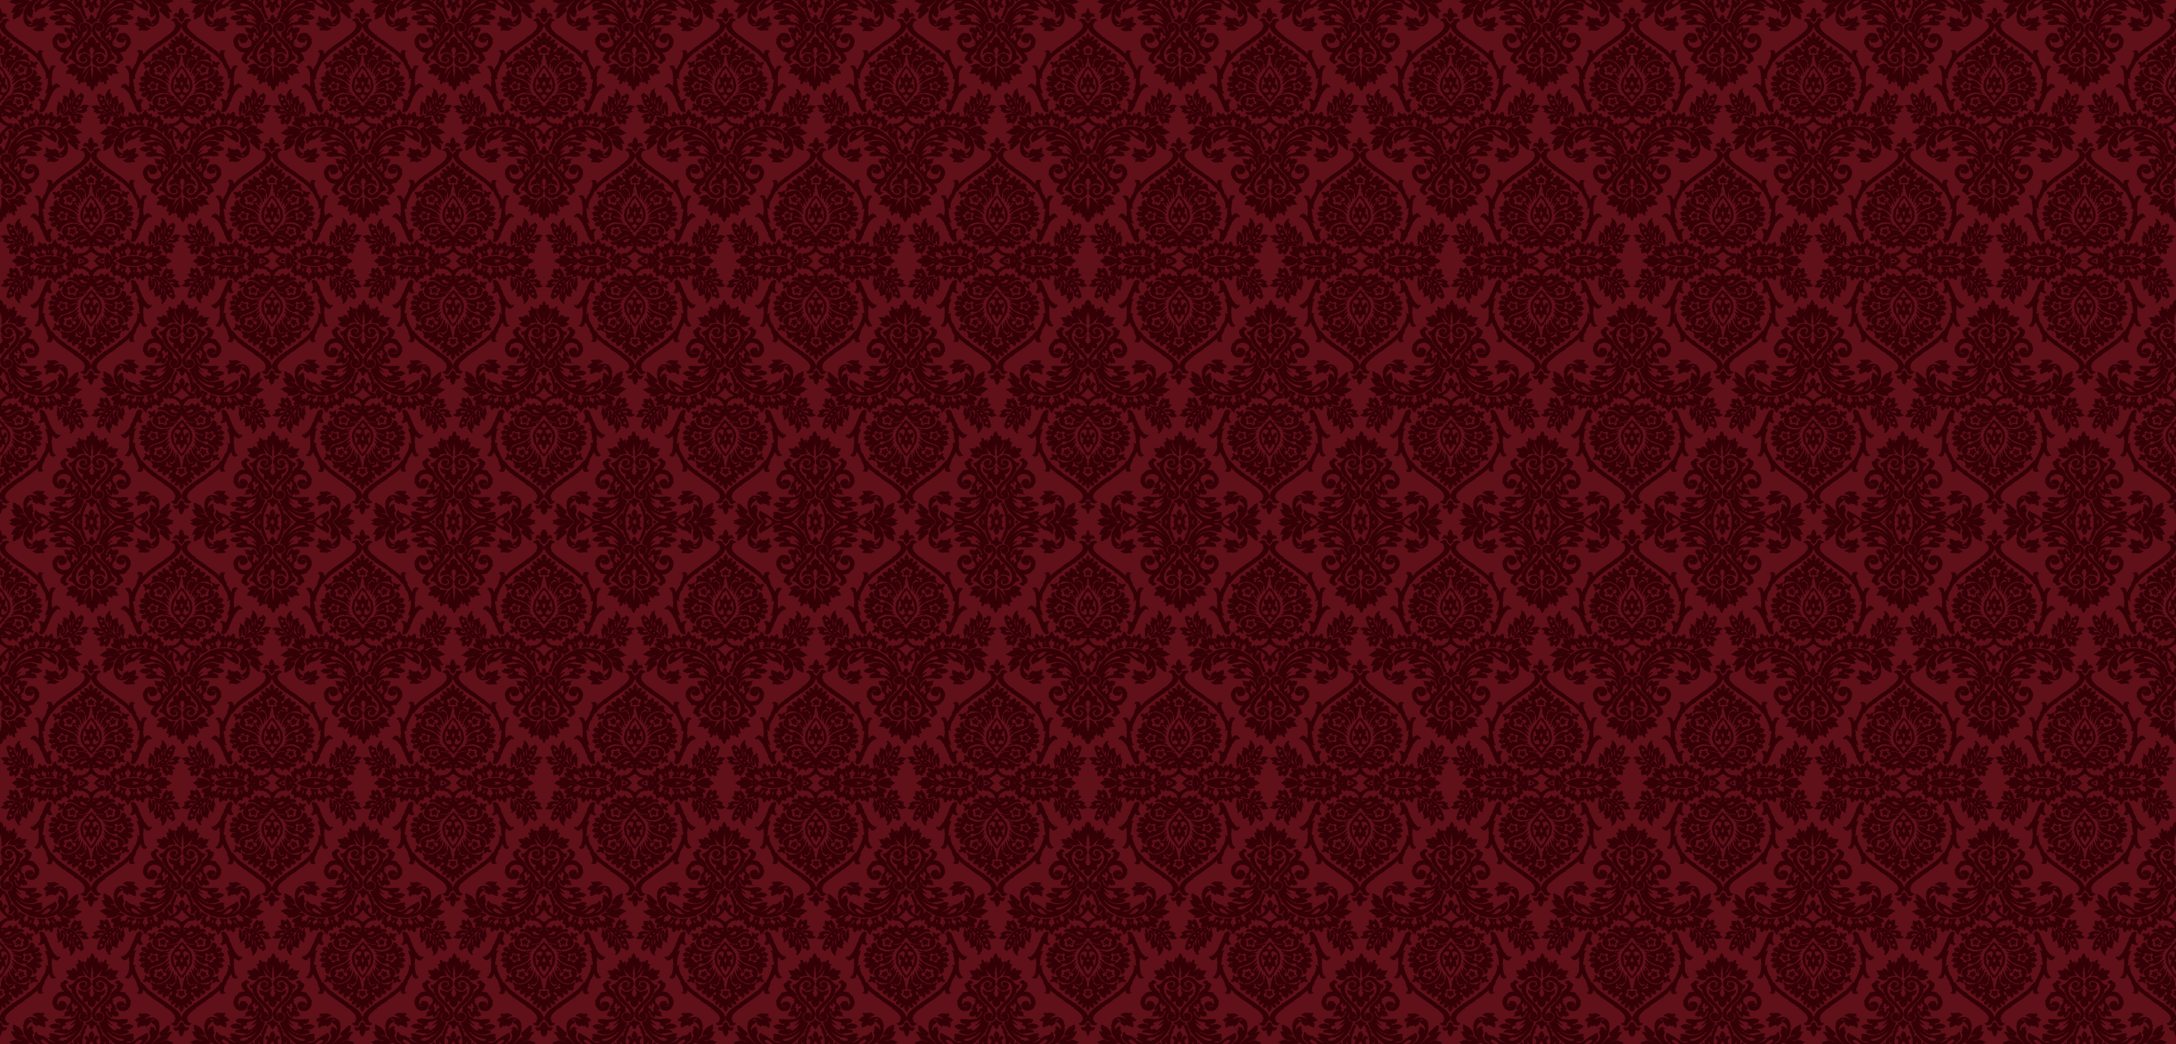 and red damask background - photo #13